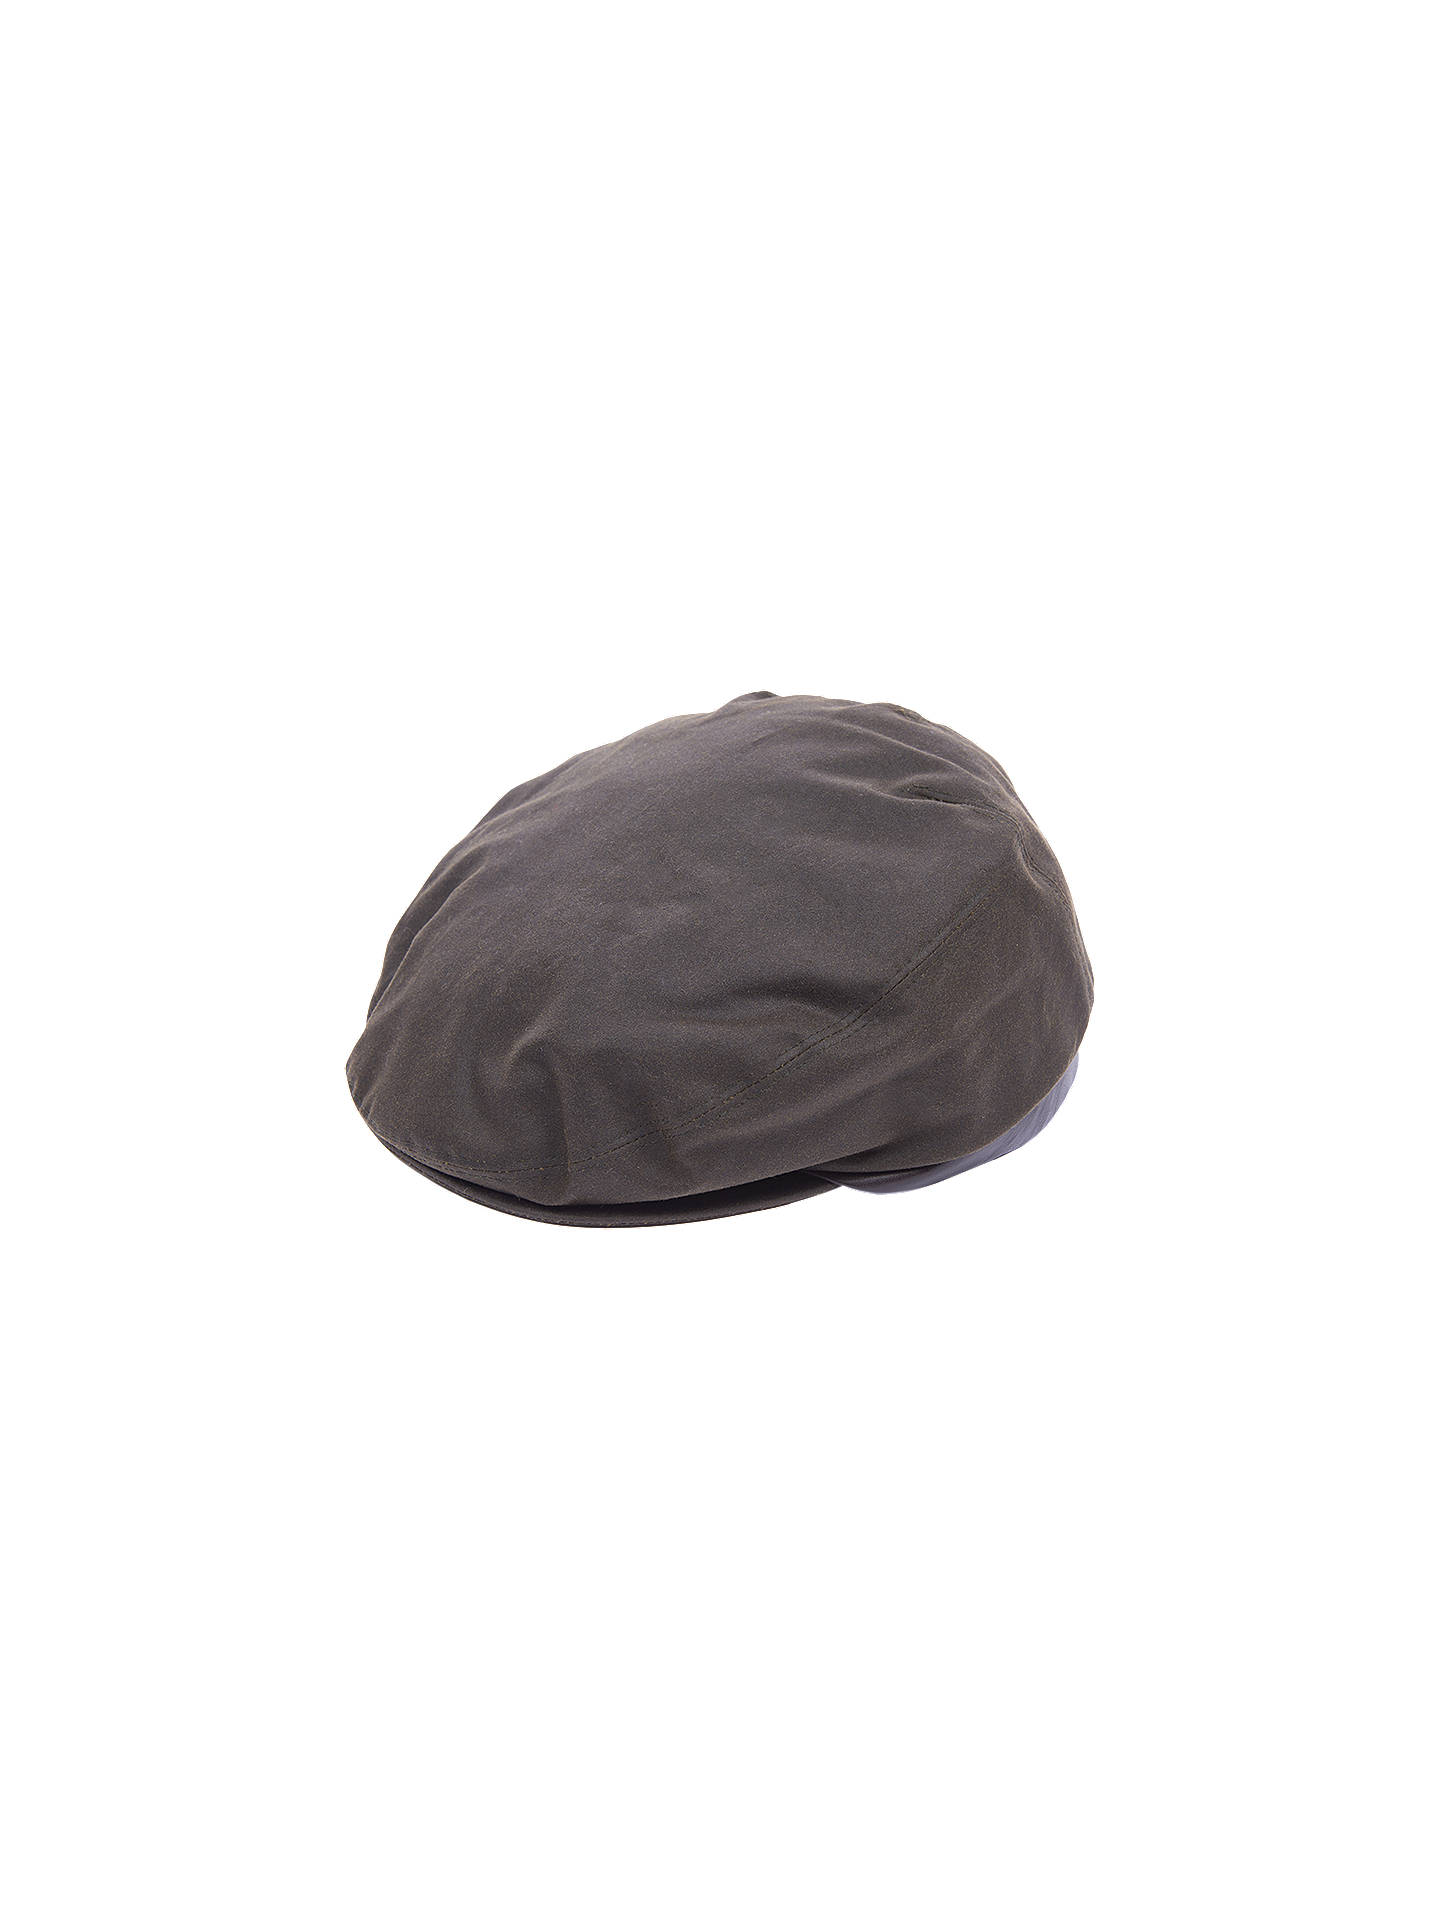 BuyBarbour Land Rover Defender Waxed Flat Cap 68deeb061df